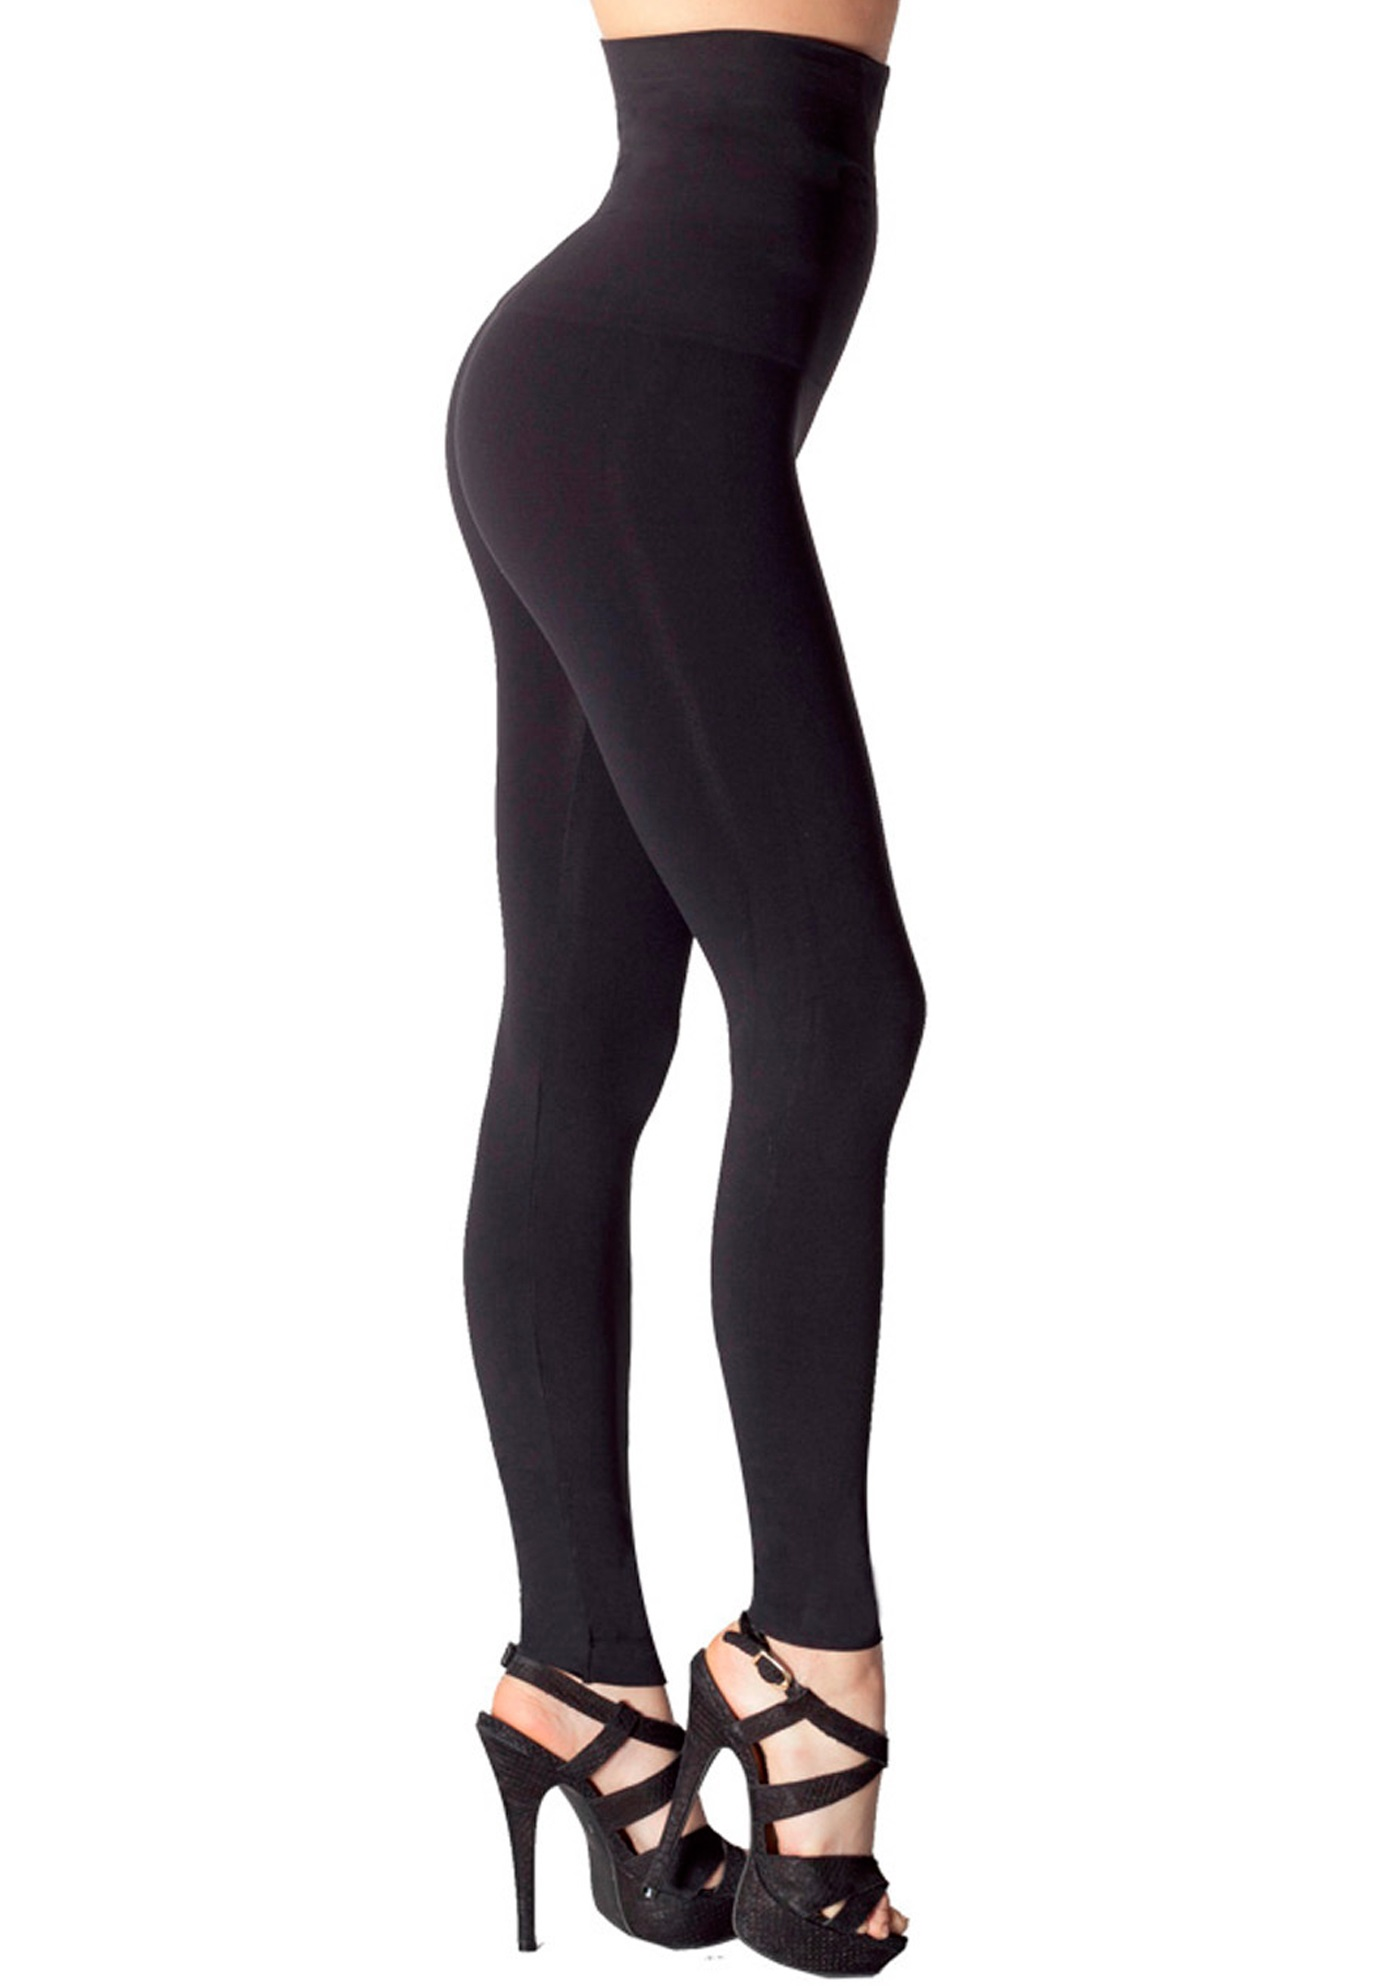 The Superior Derrière Legging by Body Hush™,